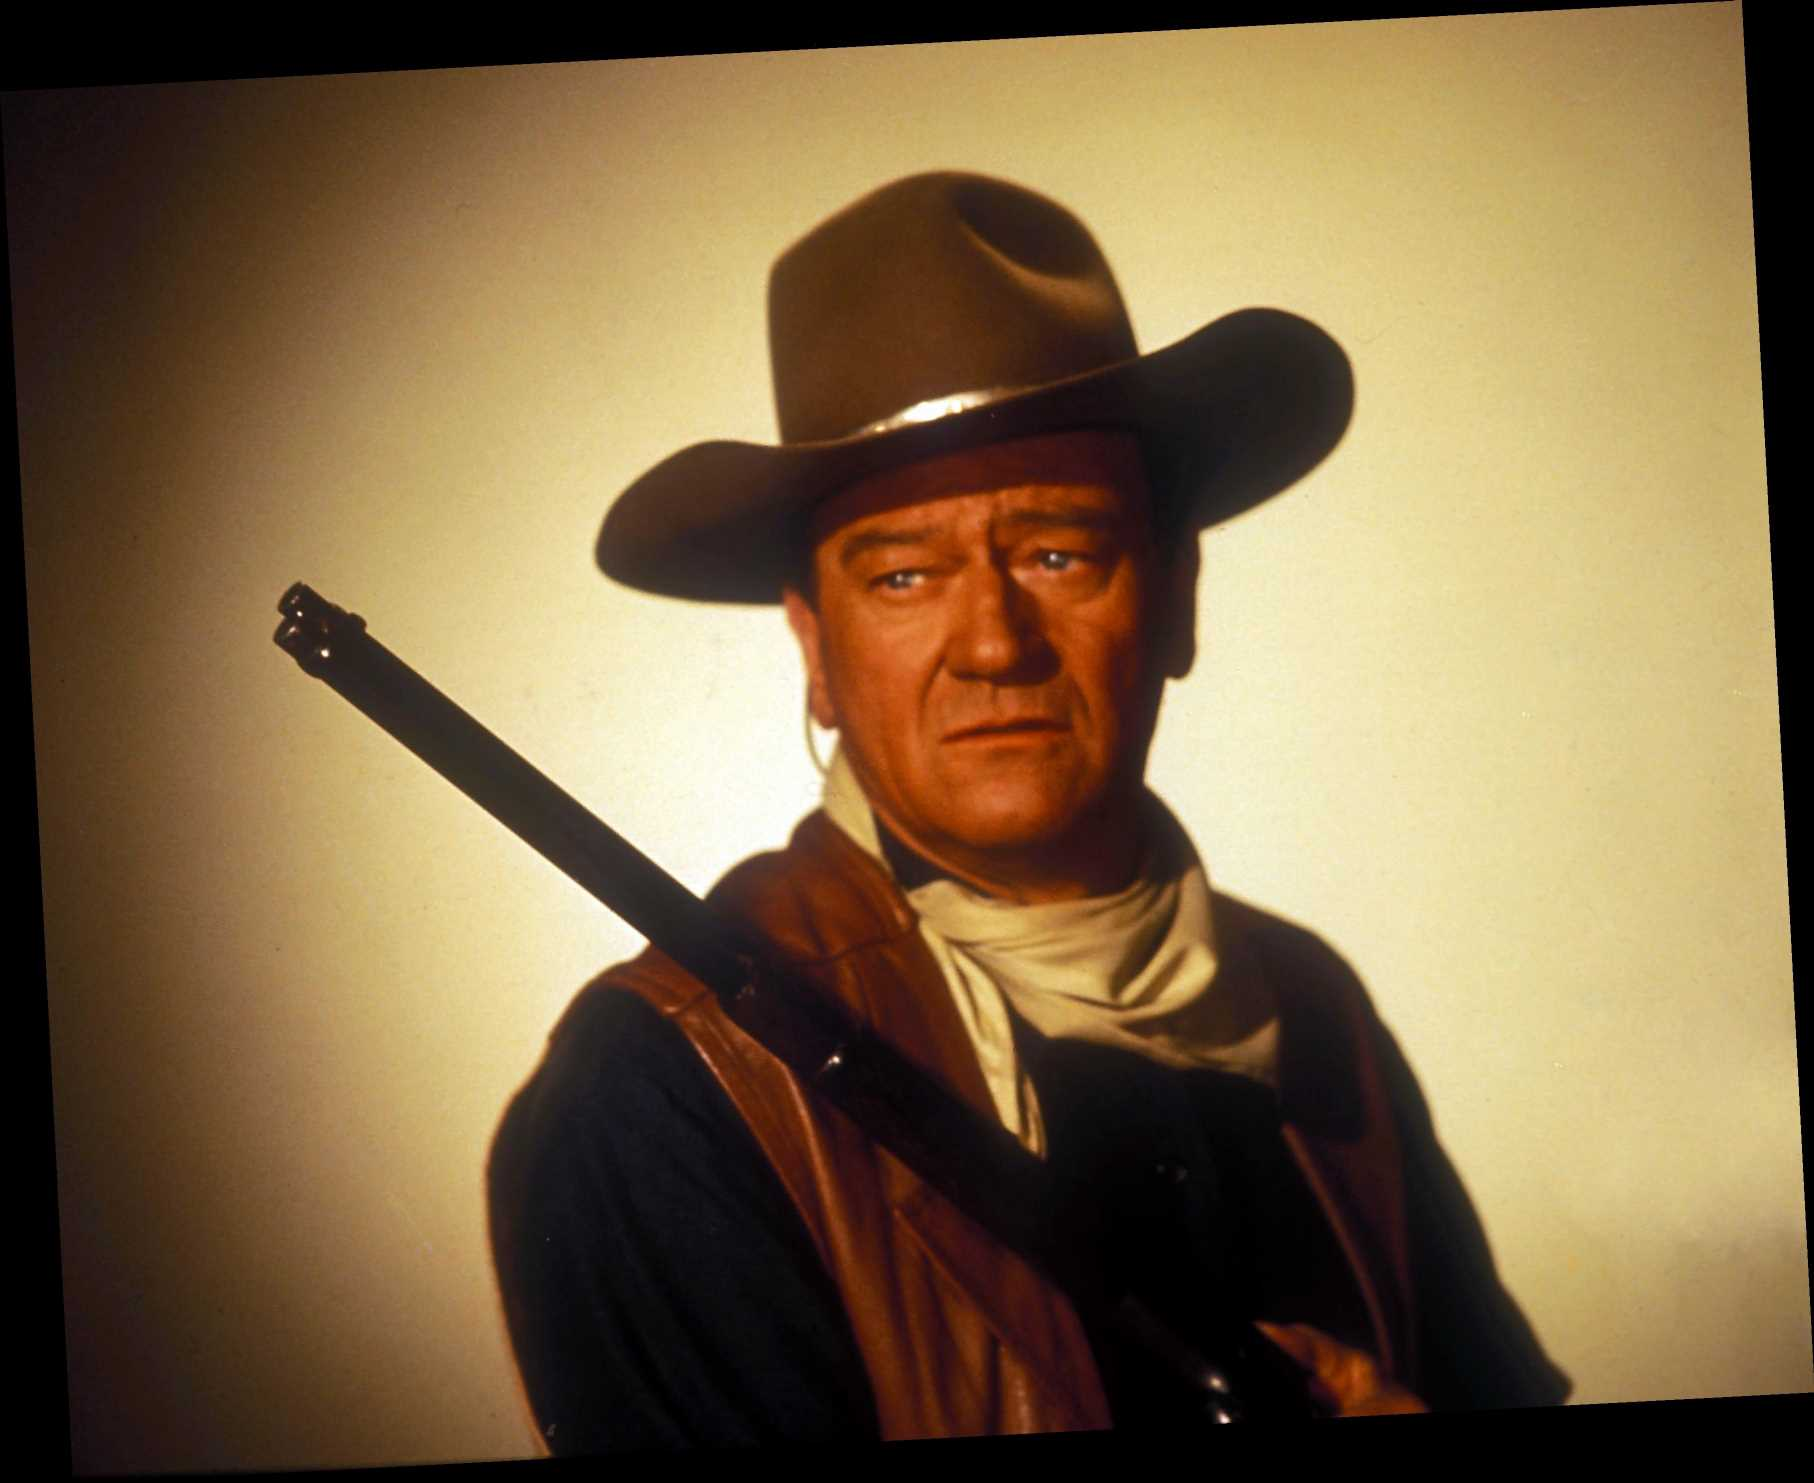 USC to Remove John Wayne Exhibit After Students Protest Actor's Racist Remarks